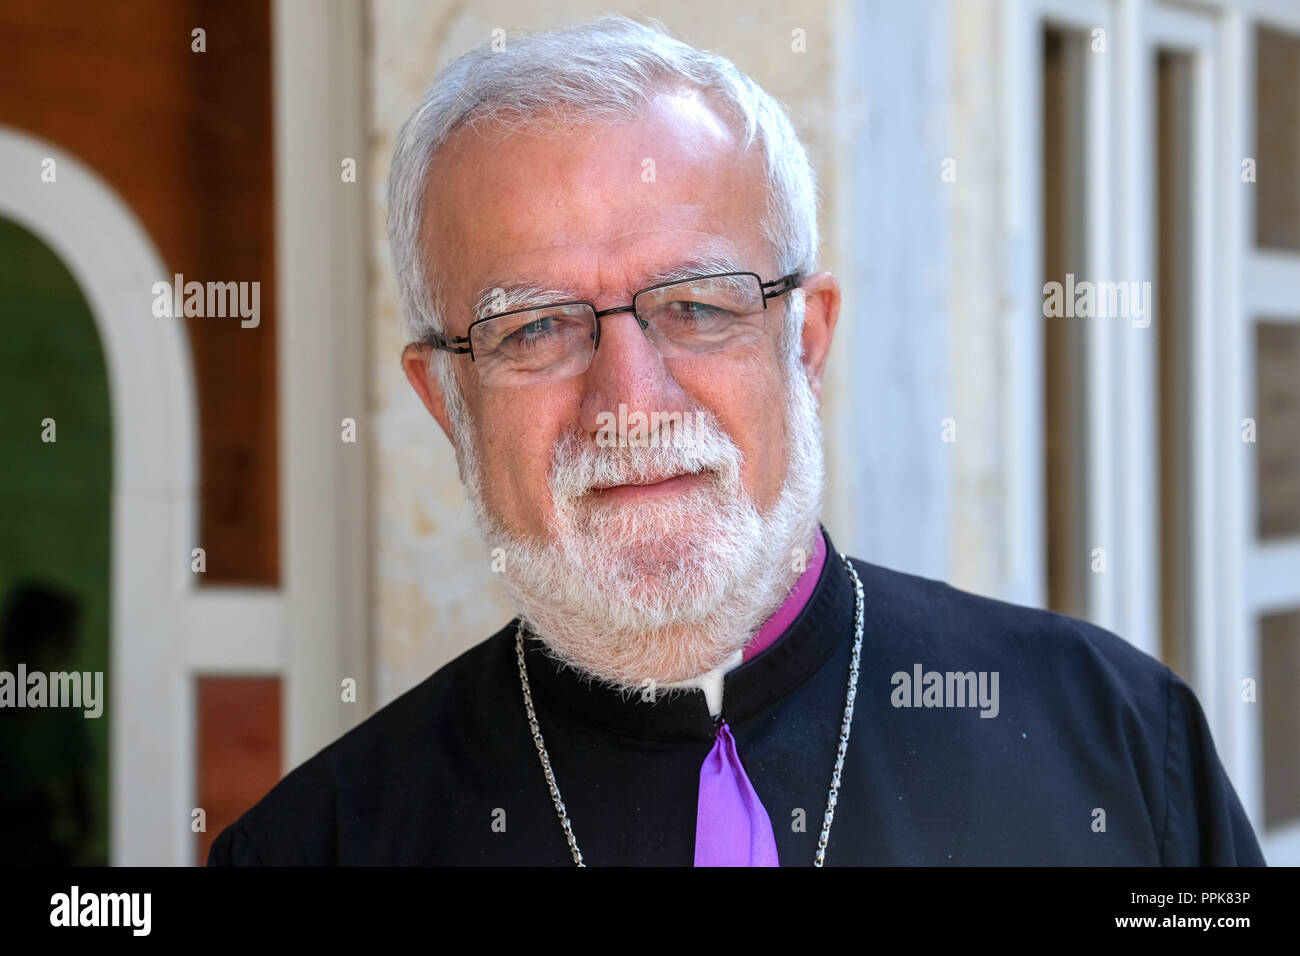 Fr. Emanuel Youkhana, Director of CAPNI (Christian Aid Program Northern Iraq) in Dohuk, Kurdistan Region, Northern Irak - Stock Image